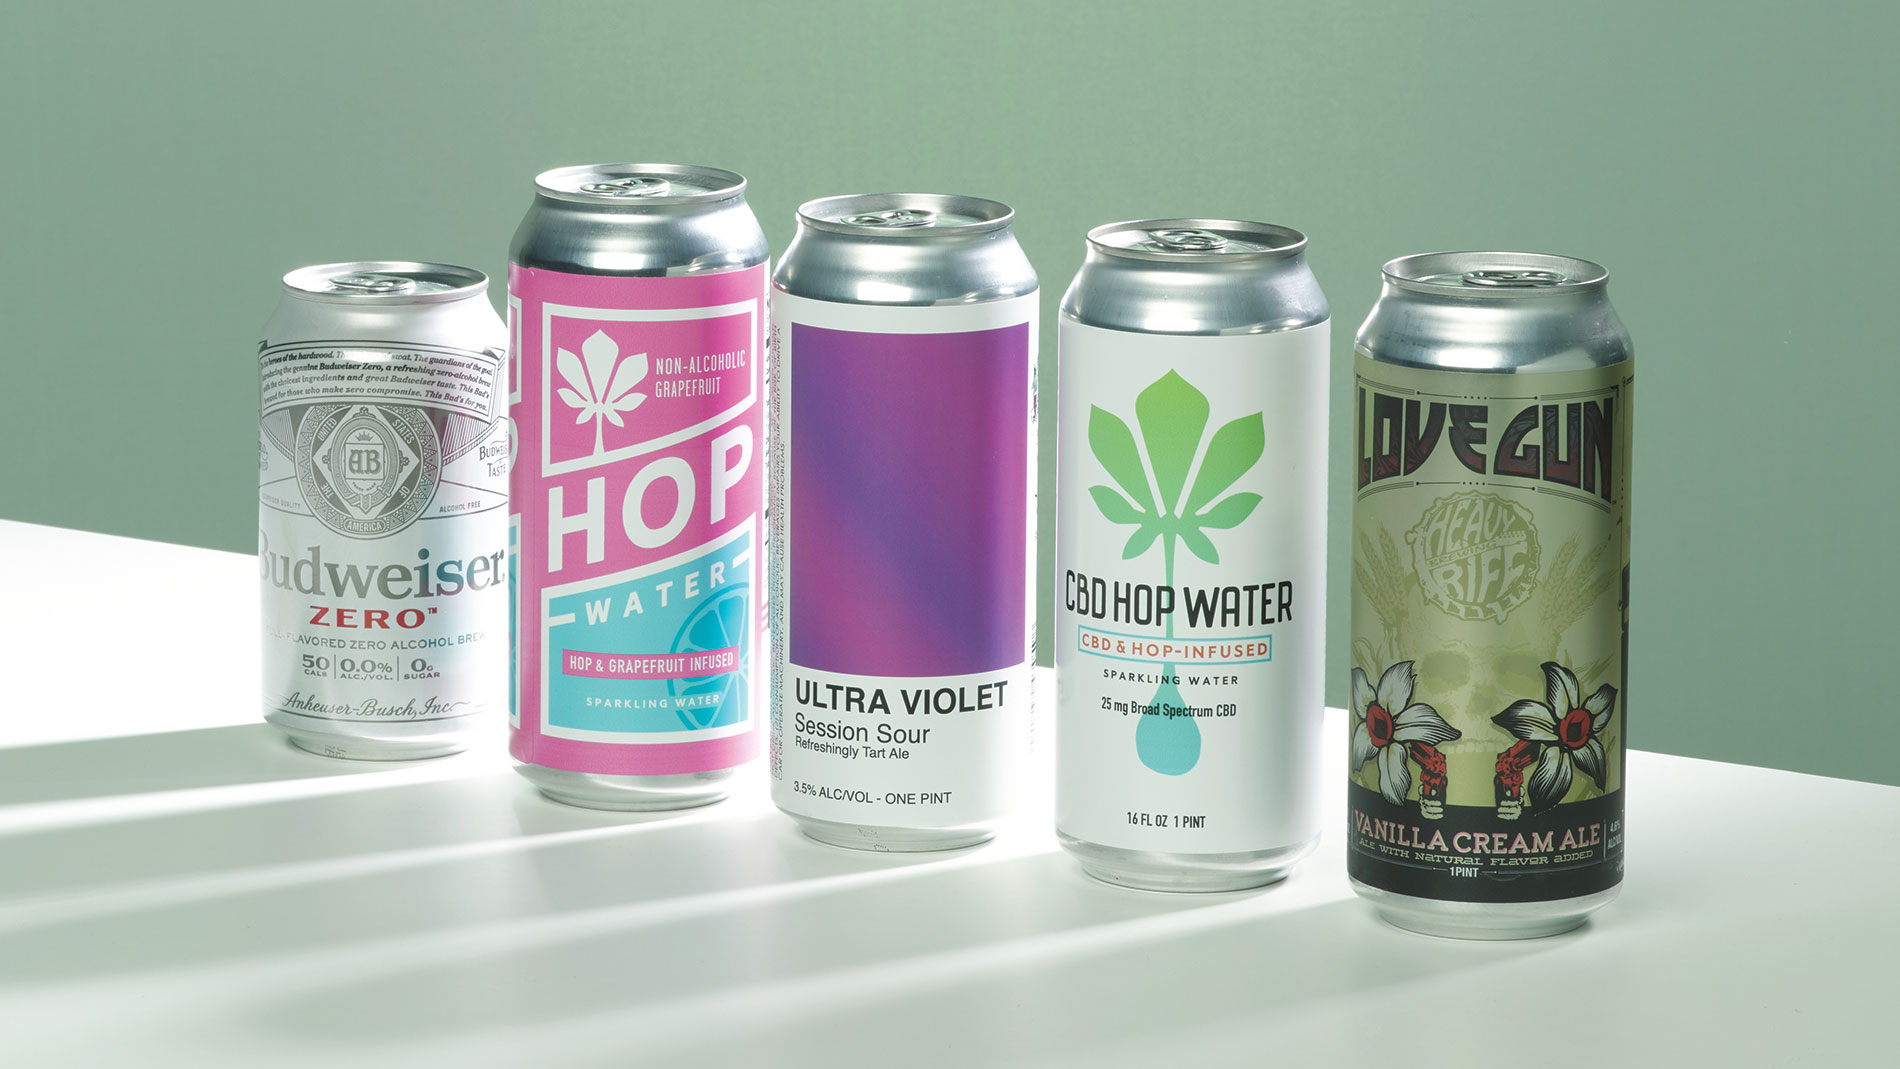 low-abv and nonalcoholic beers and hop beverages